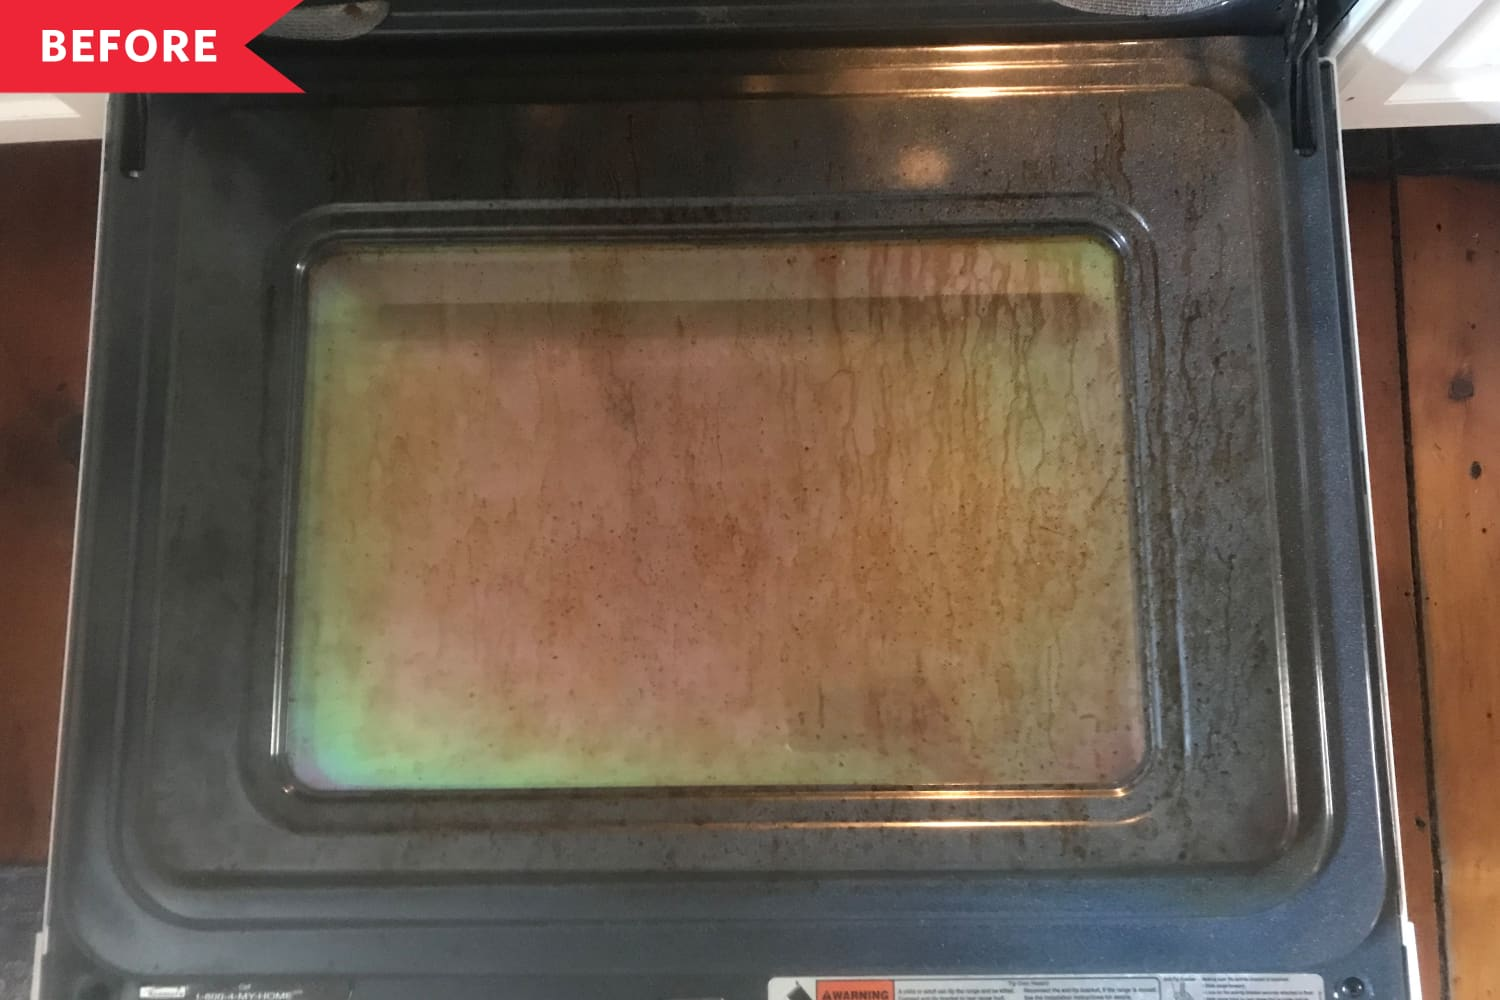 I Cleaned My Oven Door with the British Cleaning Paste That's All Over TikTok